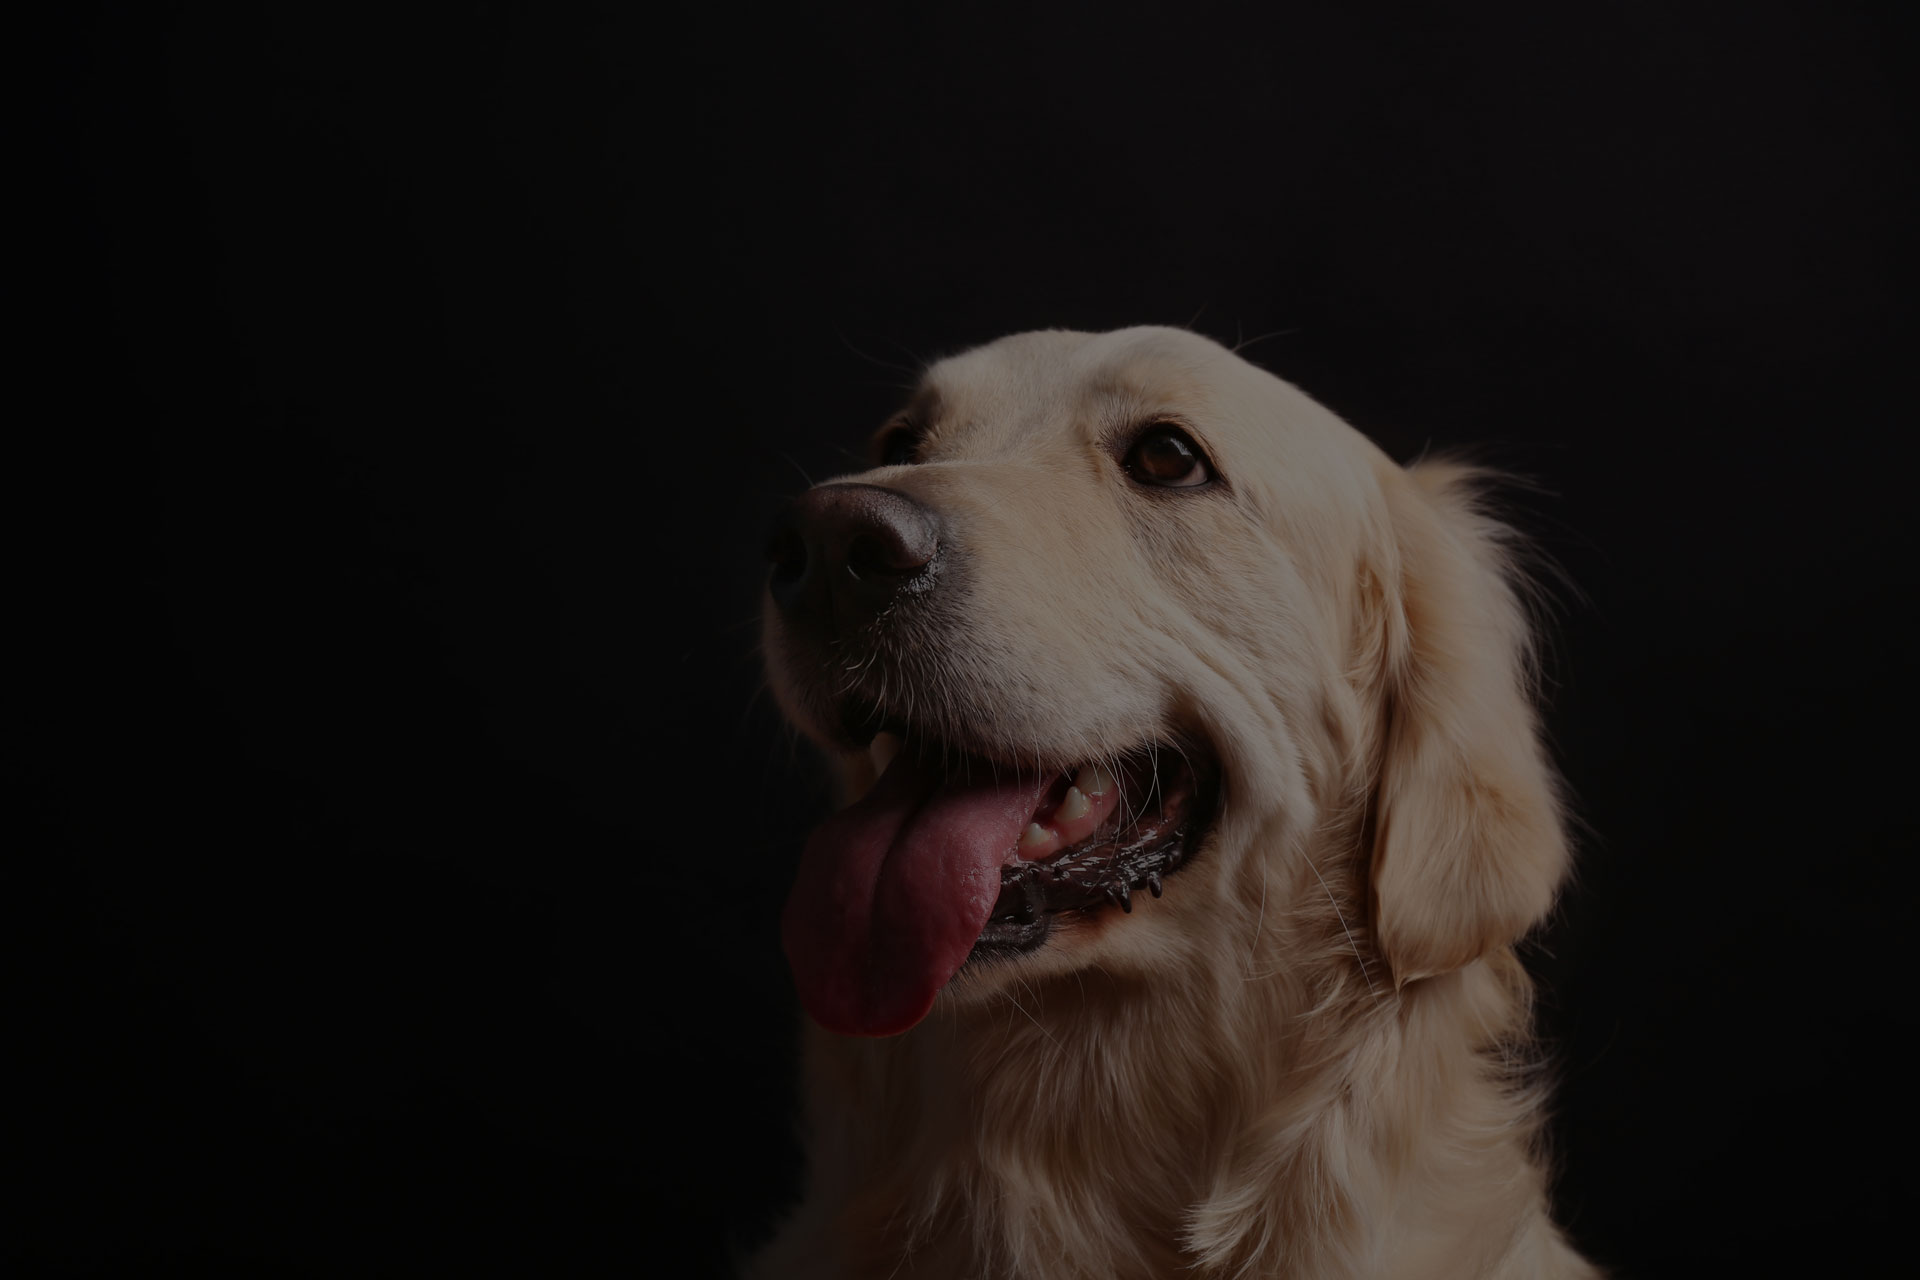 Muzzle of golden retriever on black background